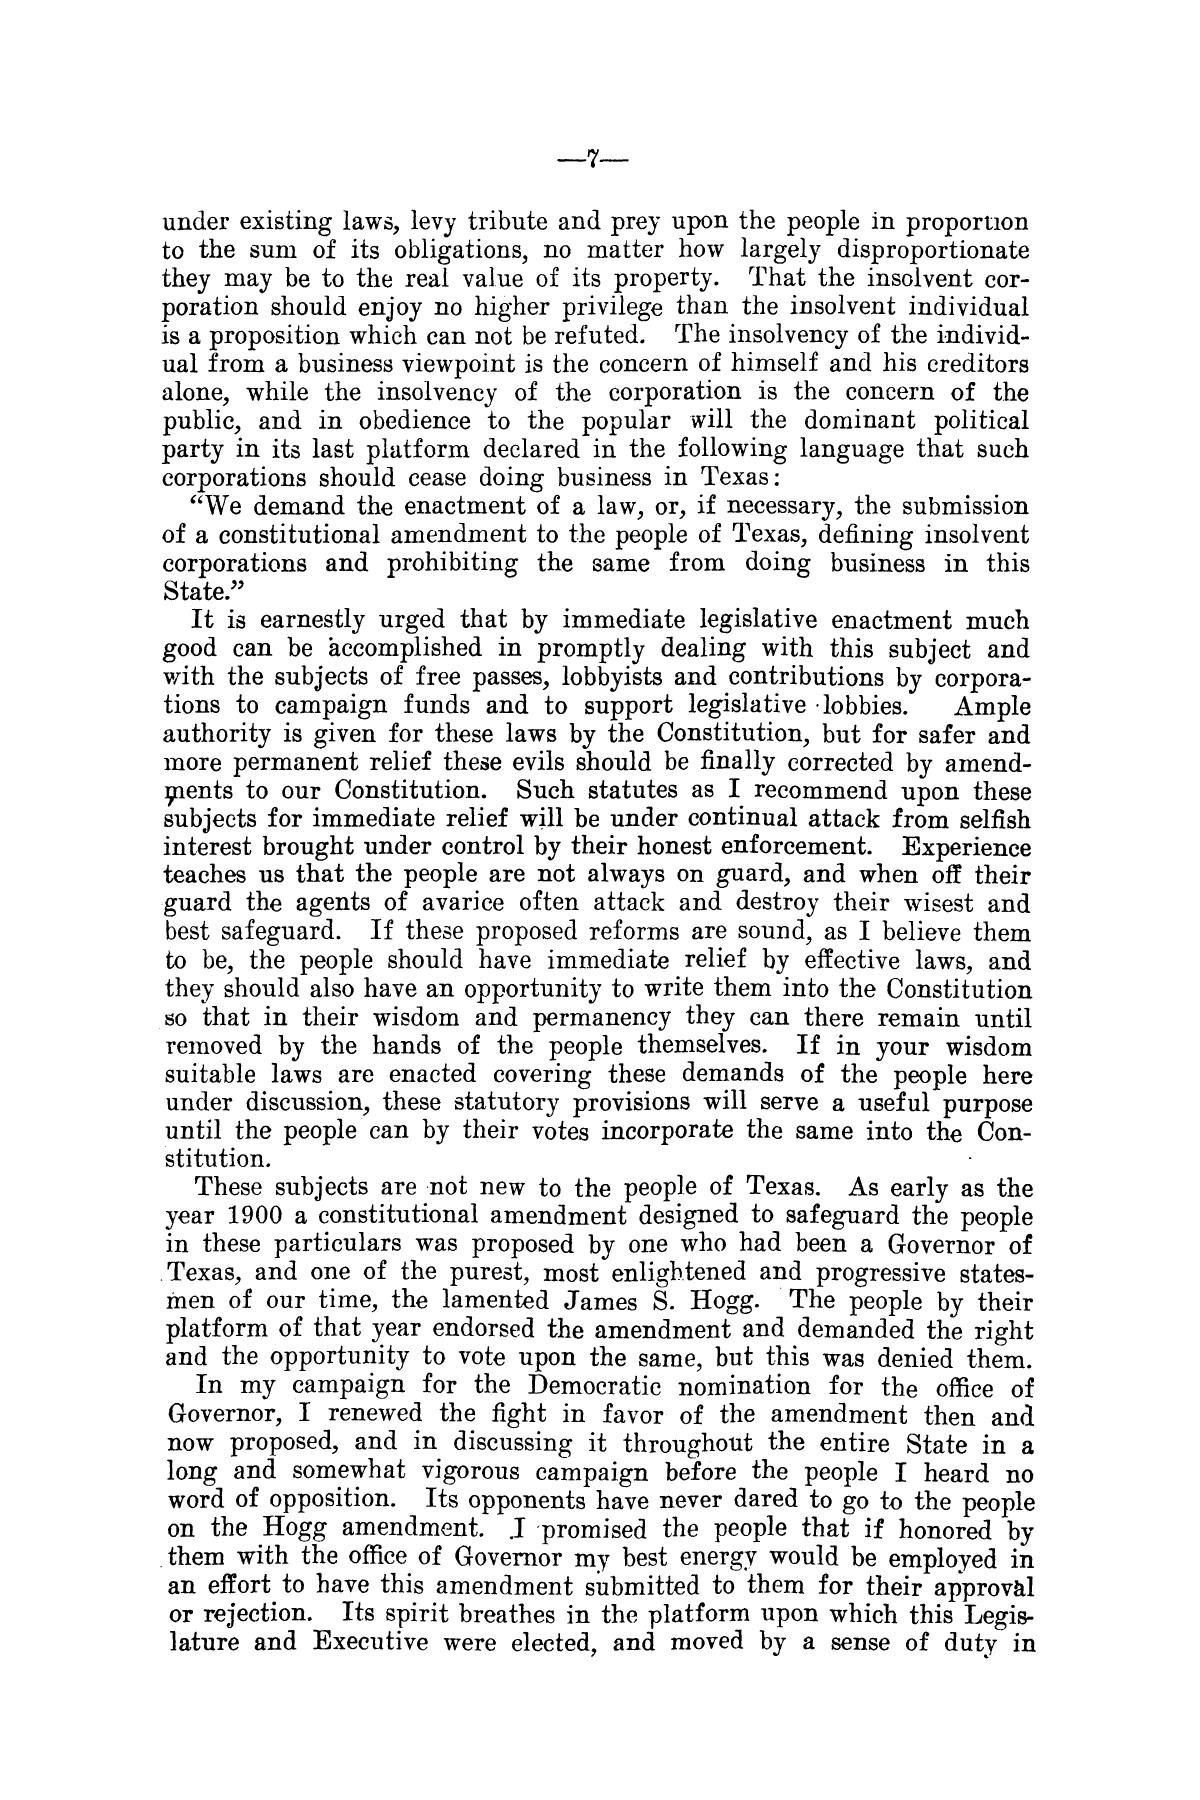 Message of Governor T.M. Campbell to the thirtieth legislature of Texas, to which is appended the State Democratic Platform adopted at Dallas, Texas, August 13, 1906.                                                                                                      [Sequence #]: 7 of 27